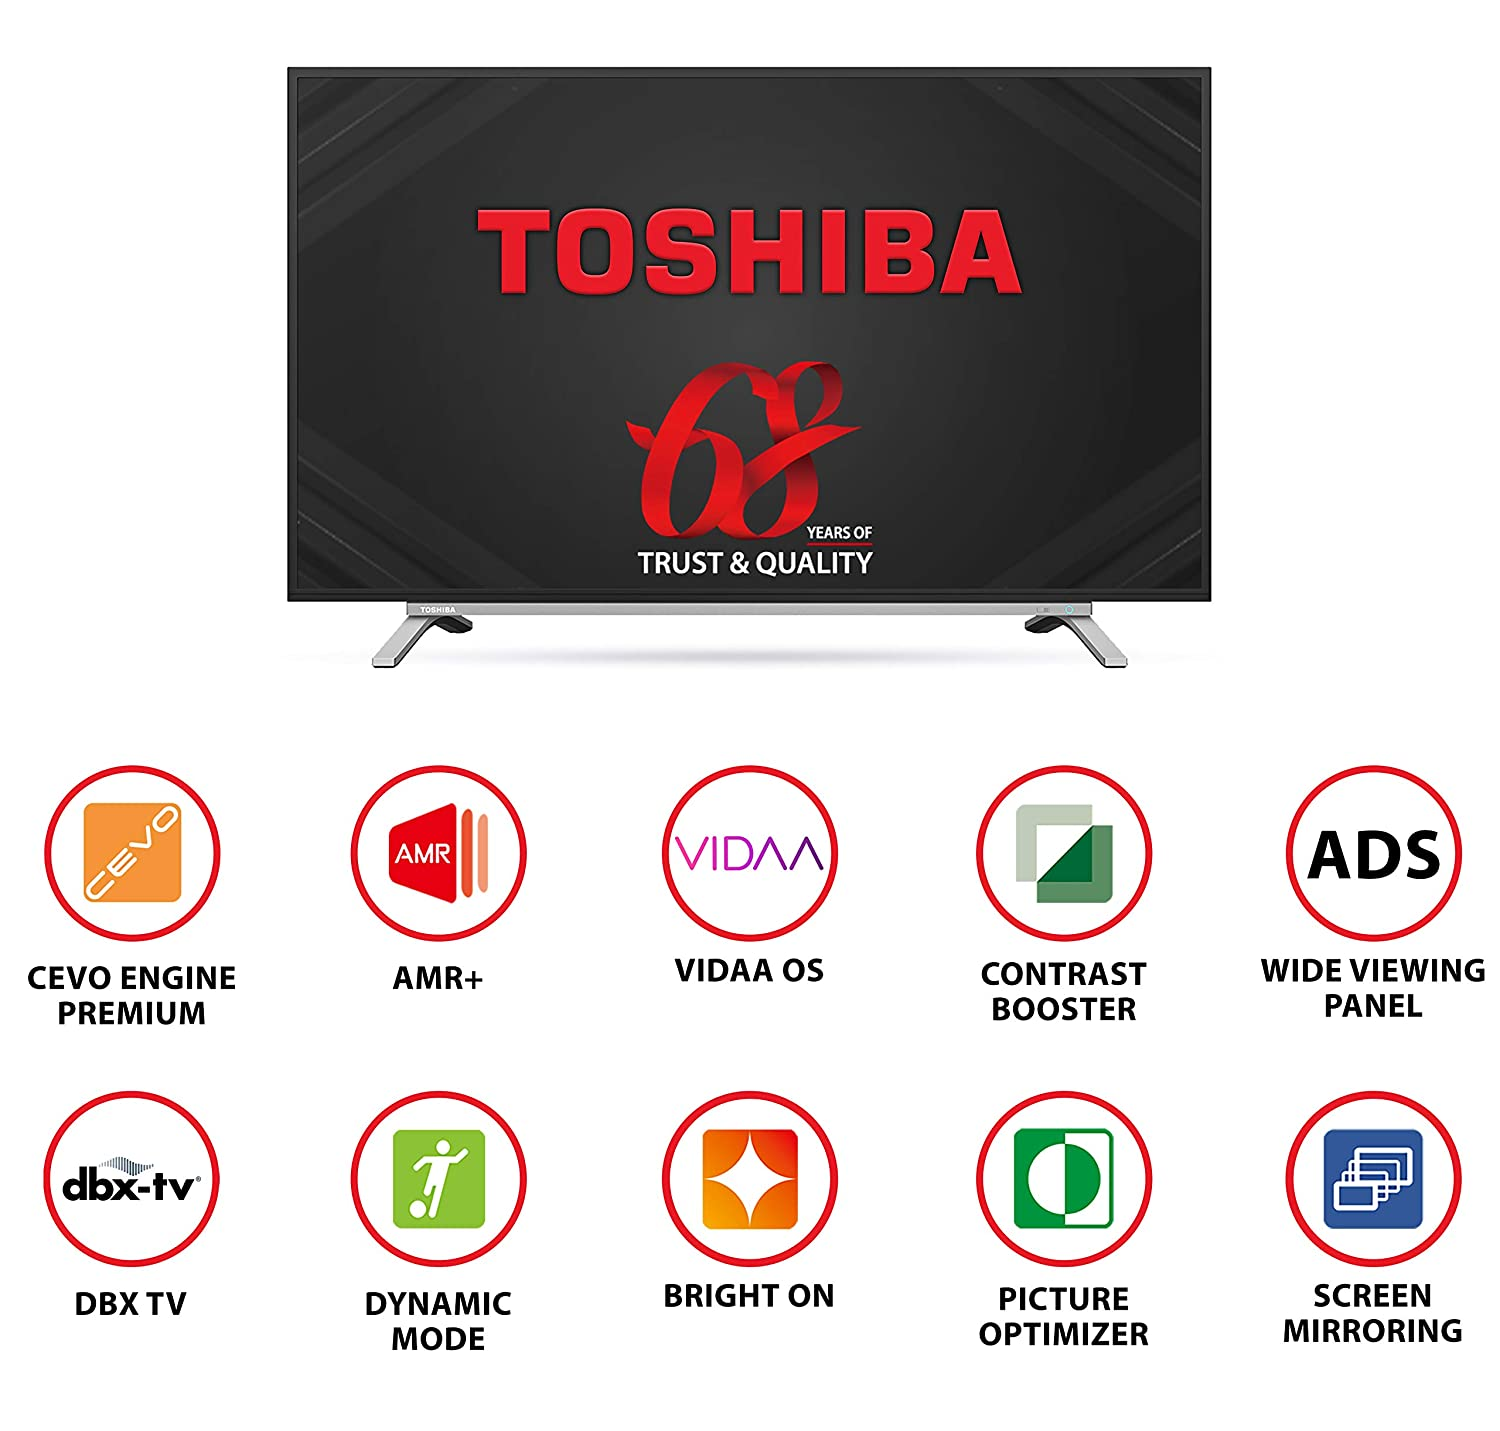 TOSHIBA 108 cm (43 inches) Vidaa OS Series Full HD Smart ADS LED TV